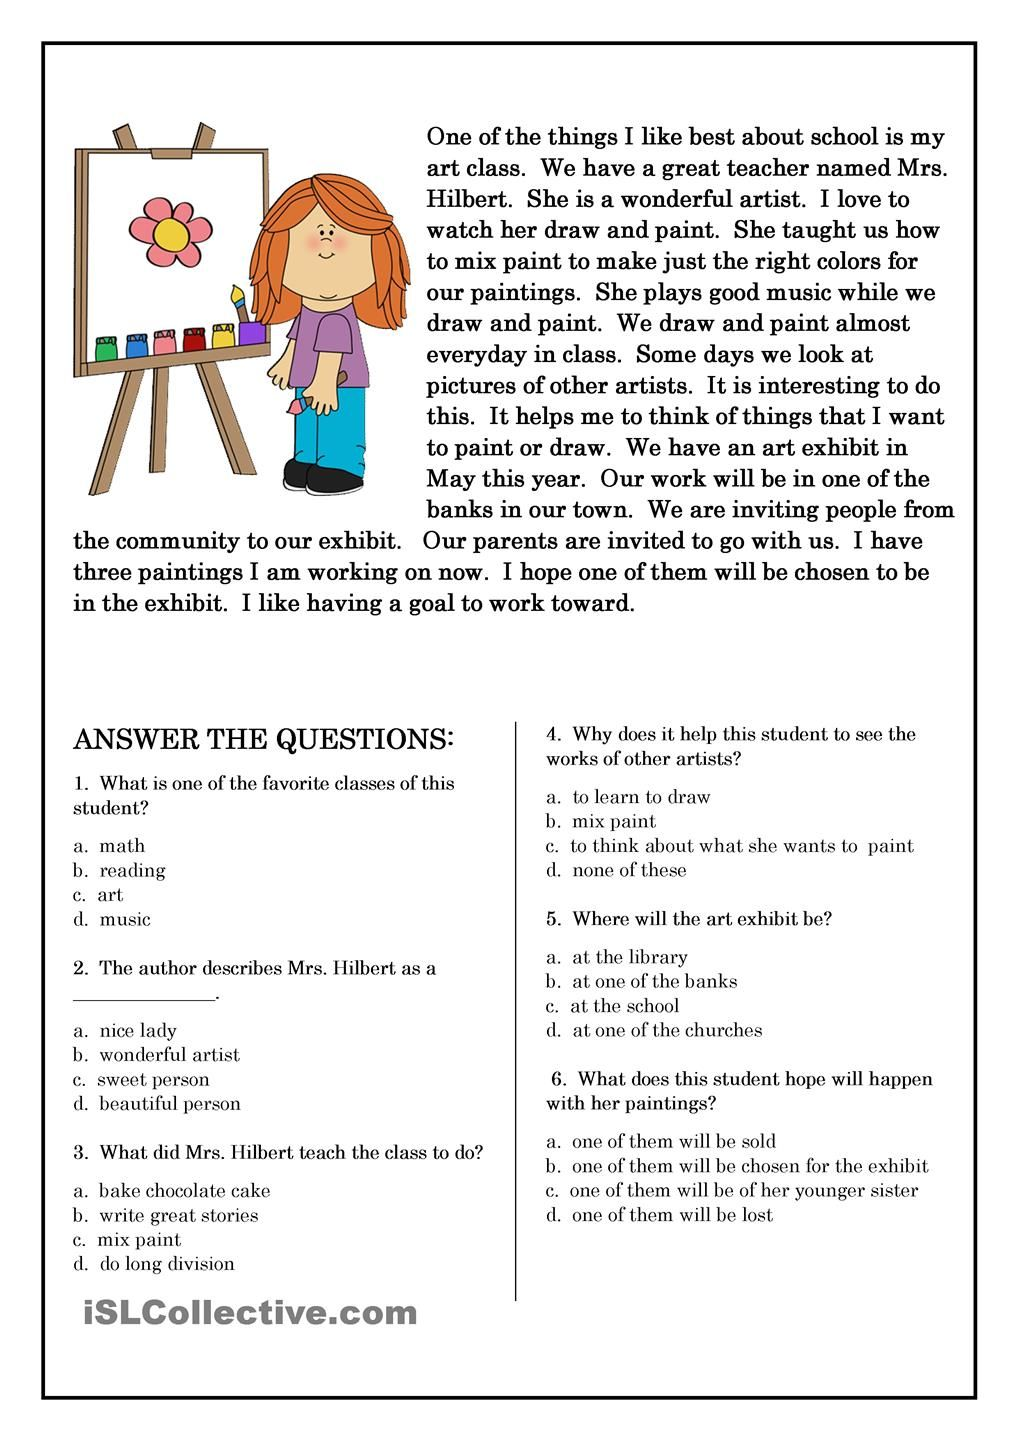 Worksheet Reading Comprehension Text And Questions 1000 images about reading comprehension on pinterest simple sentences grade 1 and stories